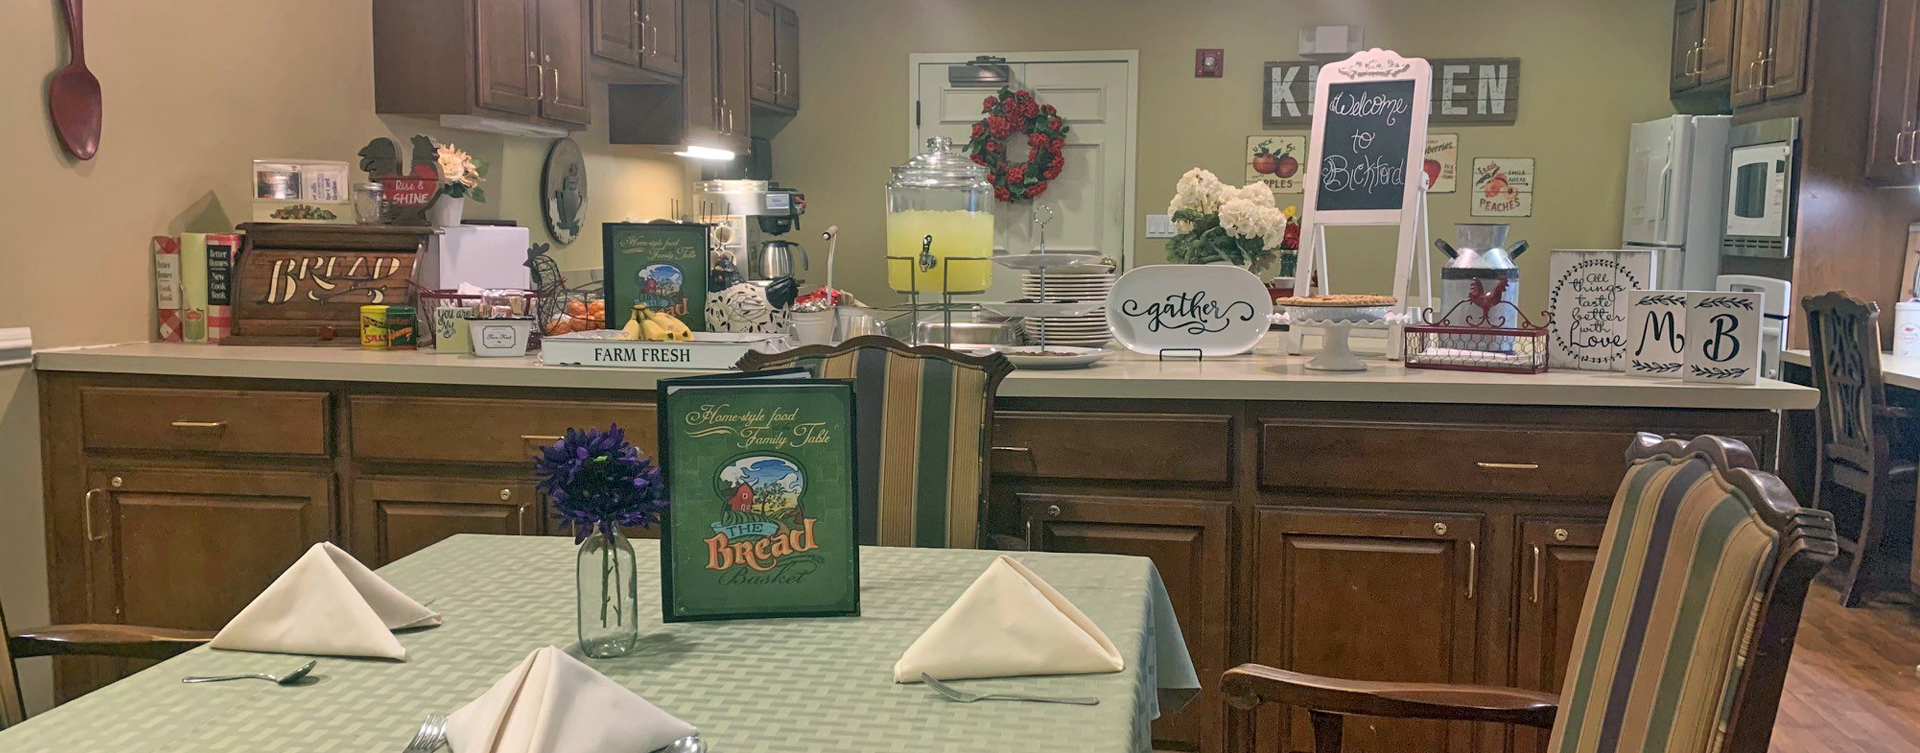 Mary B's country kitchen evokes a sense of home and reconnects residents to past life skills at Bickford of Overland Park